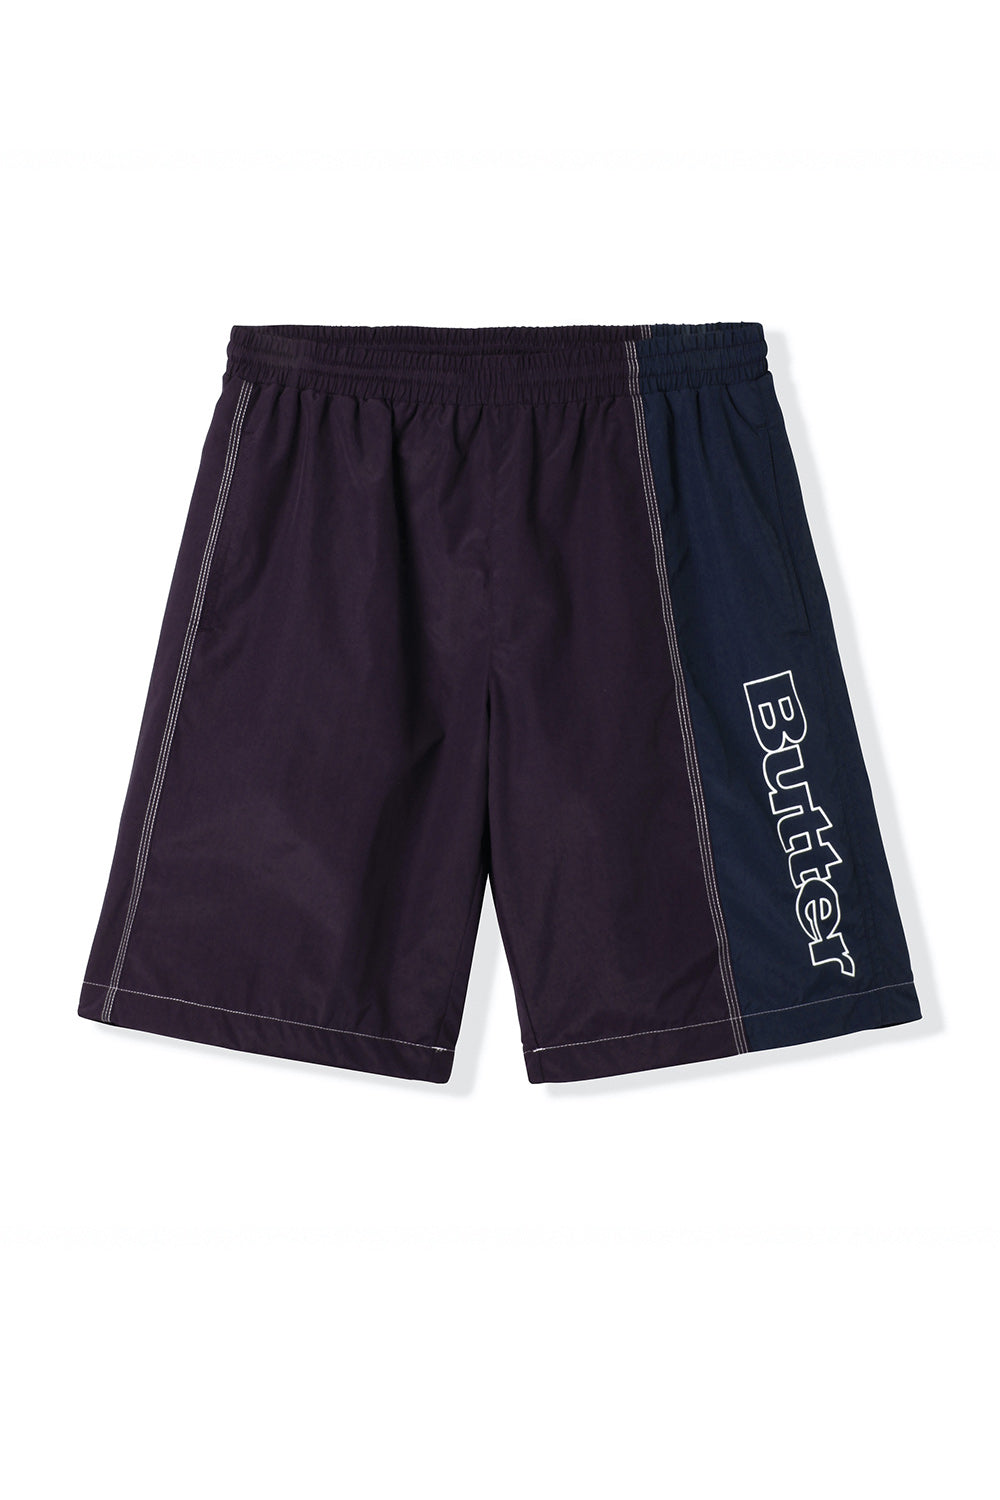 Butter Goods Quarter Nylon Shorts - Eggplant/Navy